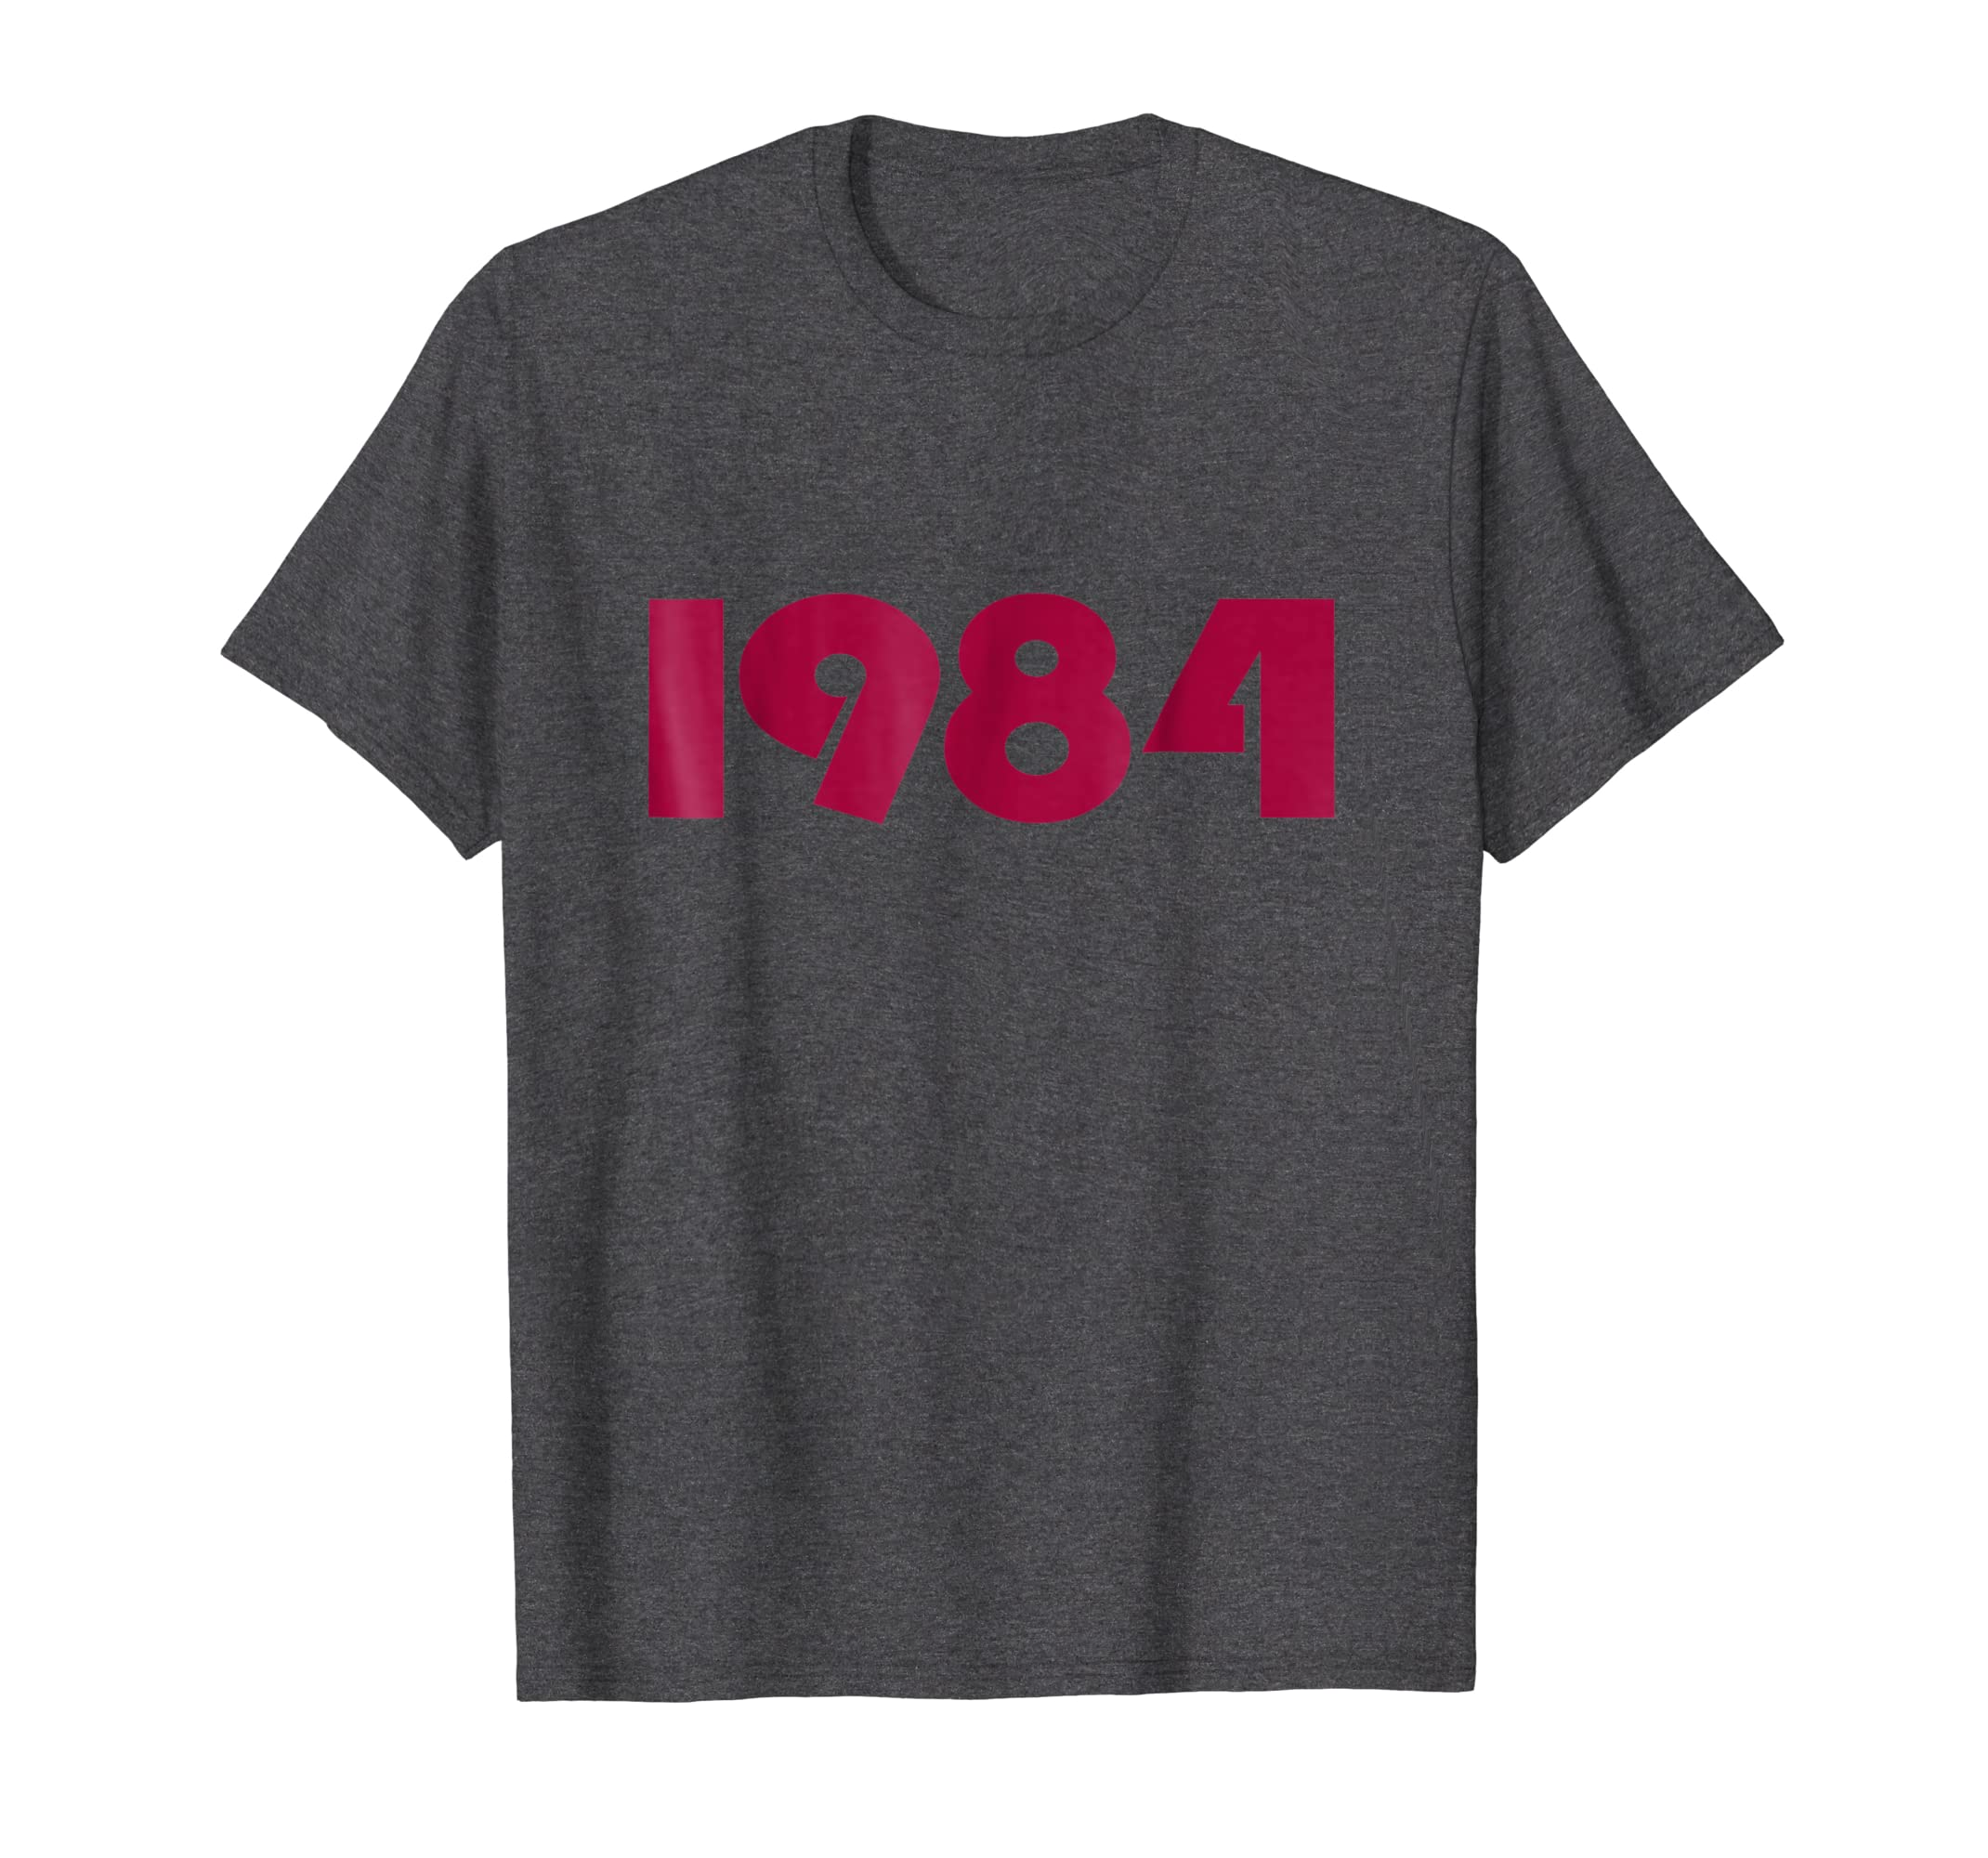 1984 T Shirt Existential Philosophical Thought Provoking Tee